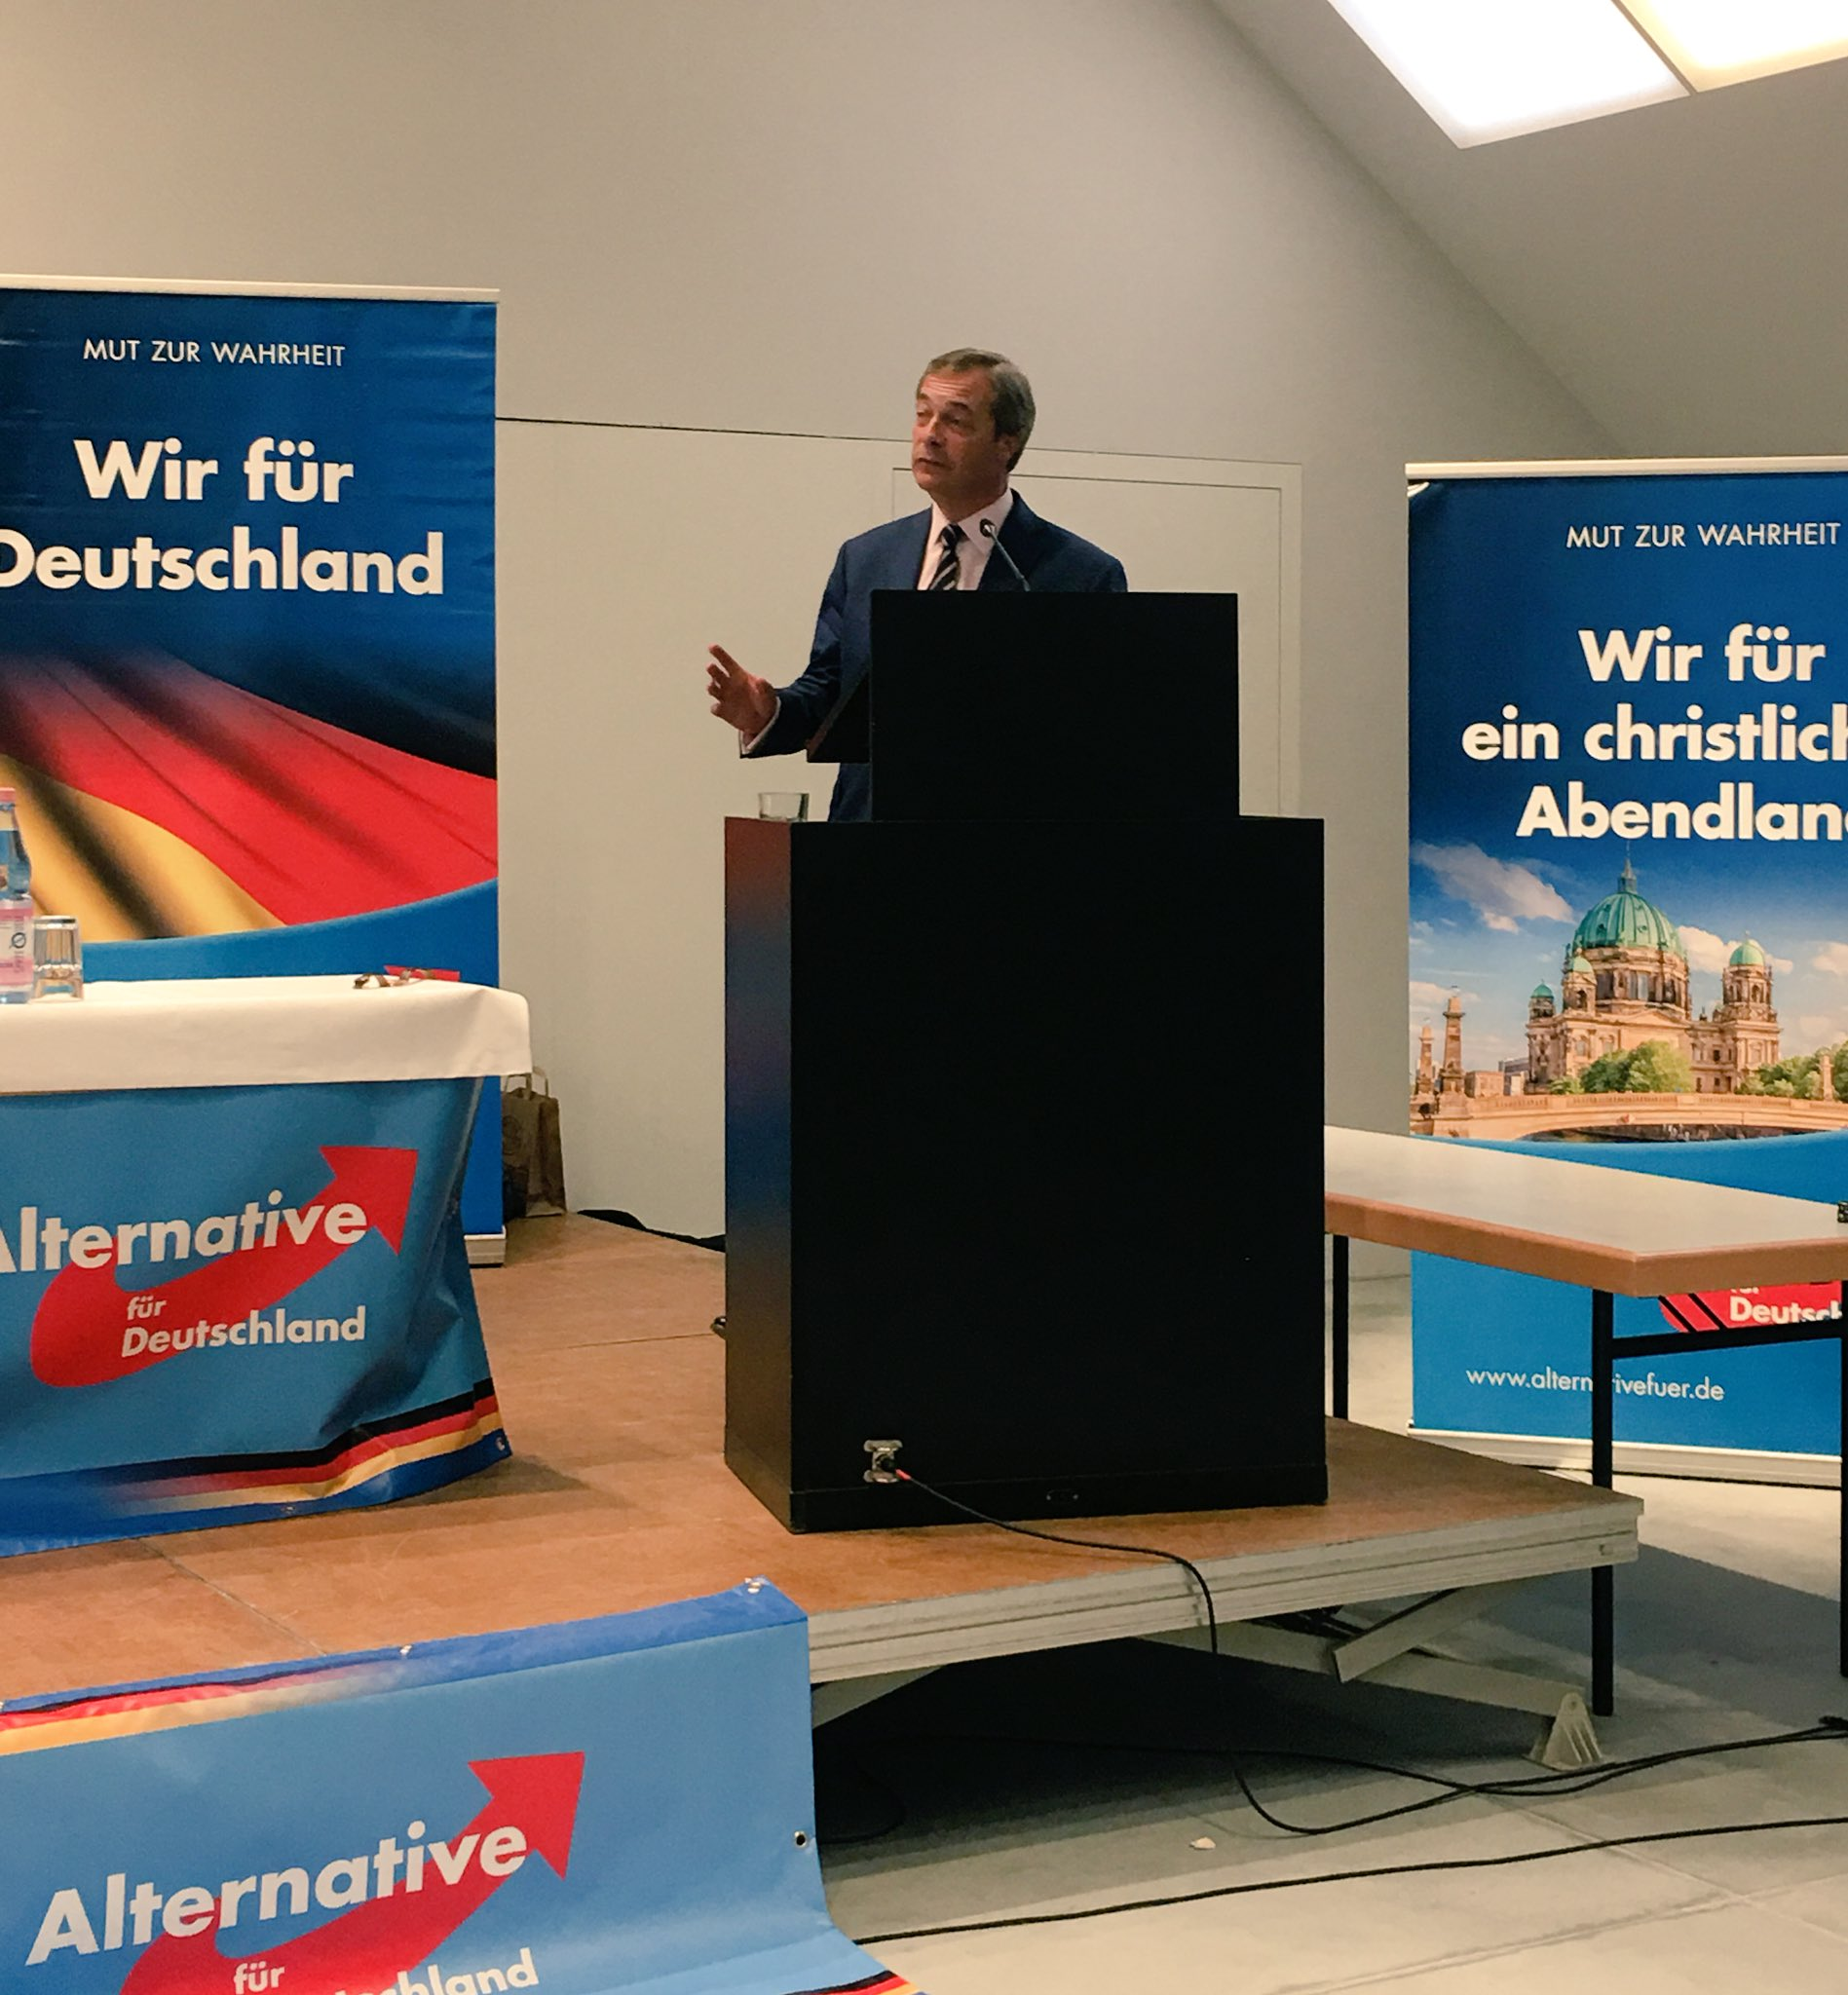 I am speaking LIVE from Germany on Brexit. Watch here: https://t.co/lb2RbPpE63 https://t.co/07PGfxGB88